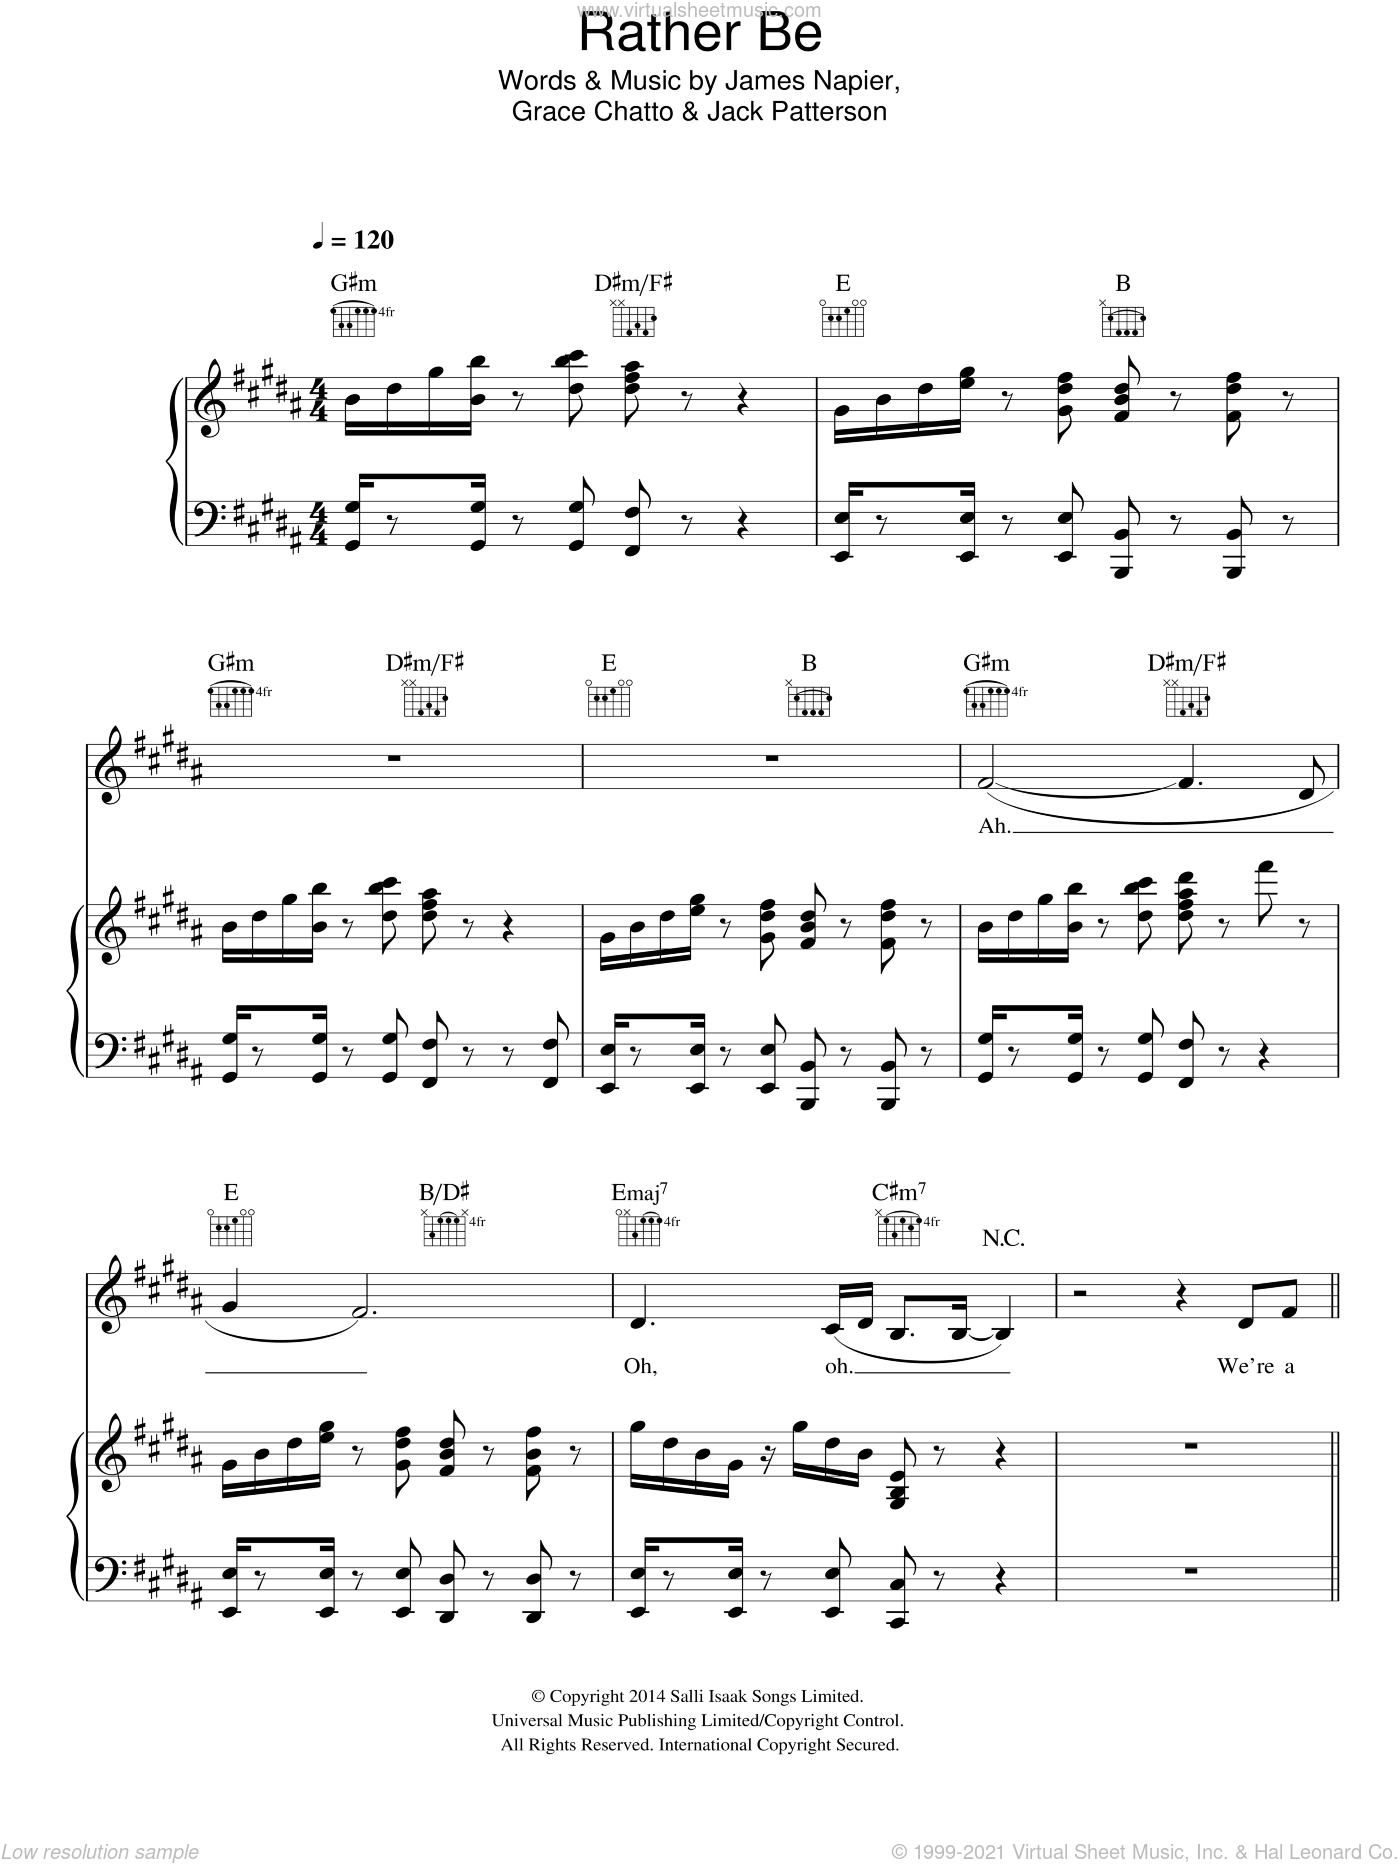 Rather Be sheet music for voice, piano or guitar by James Napier